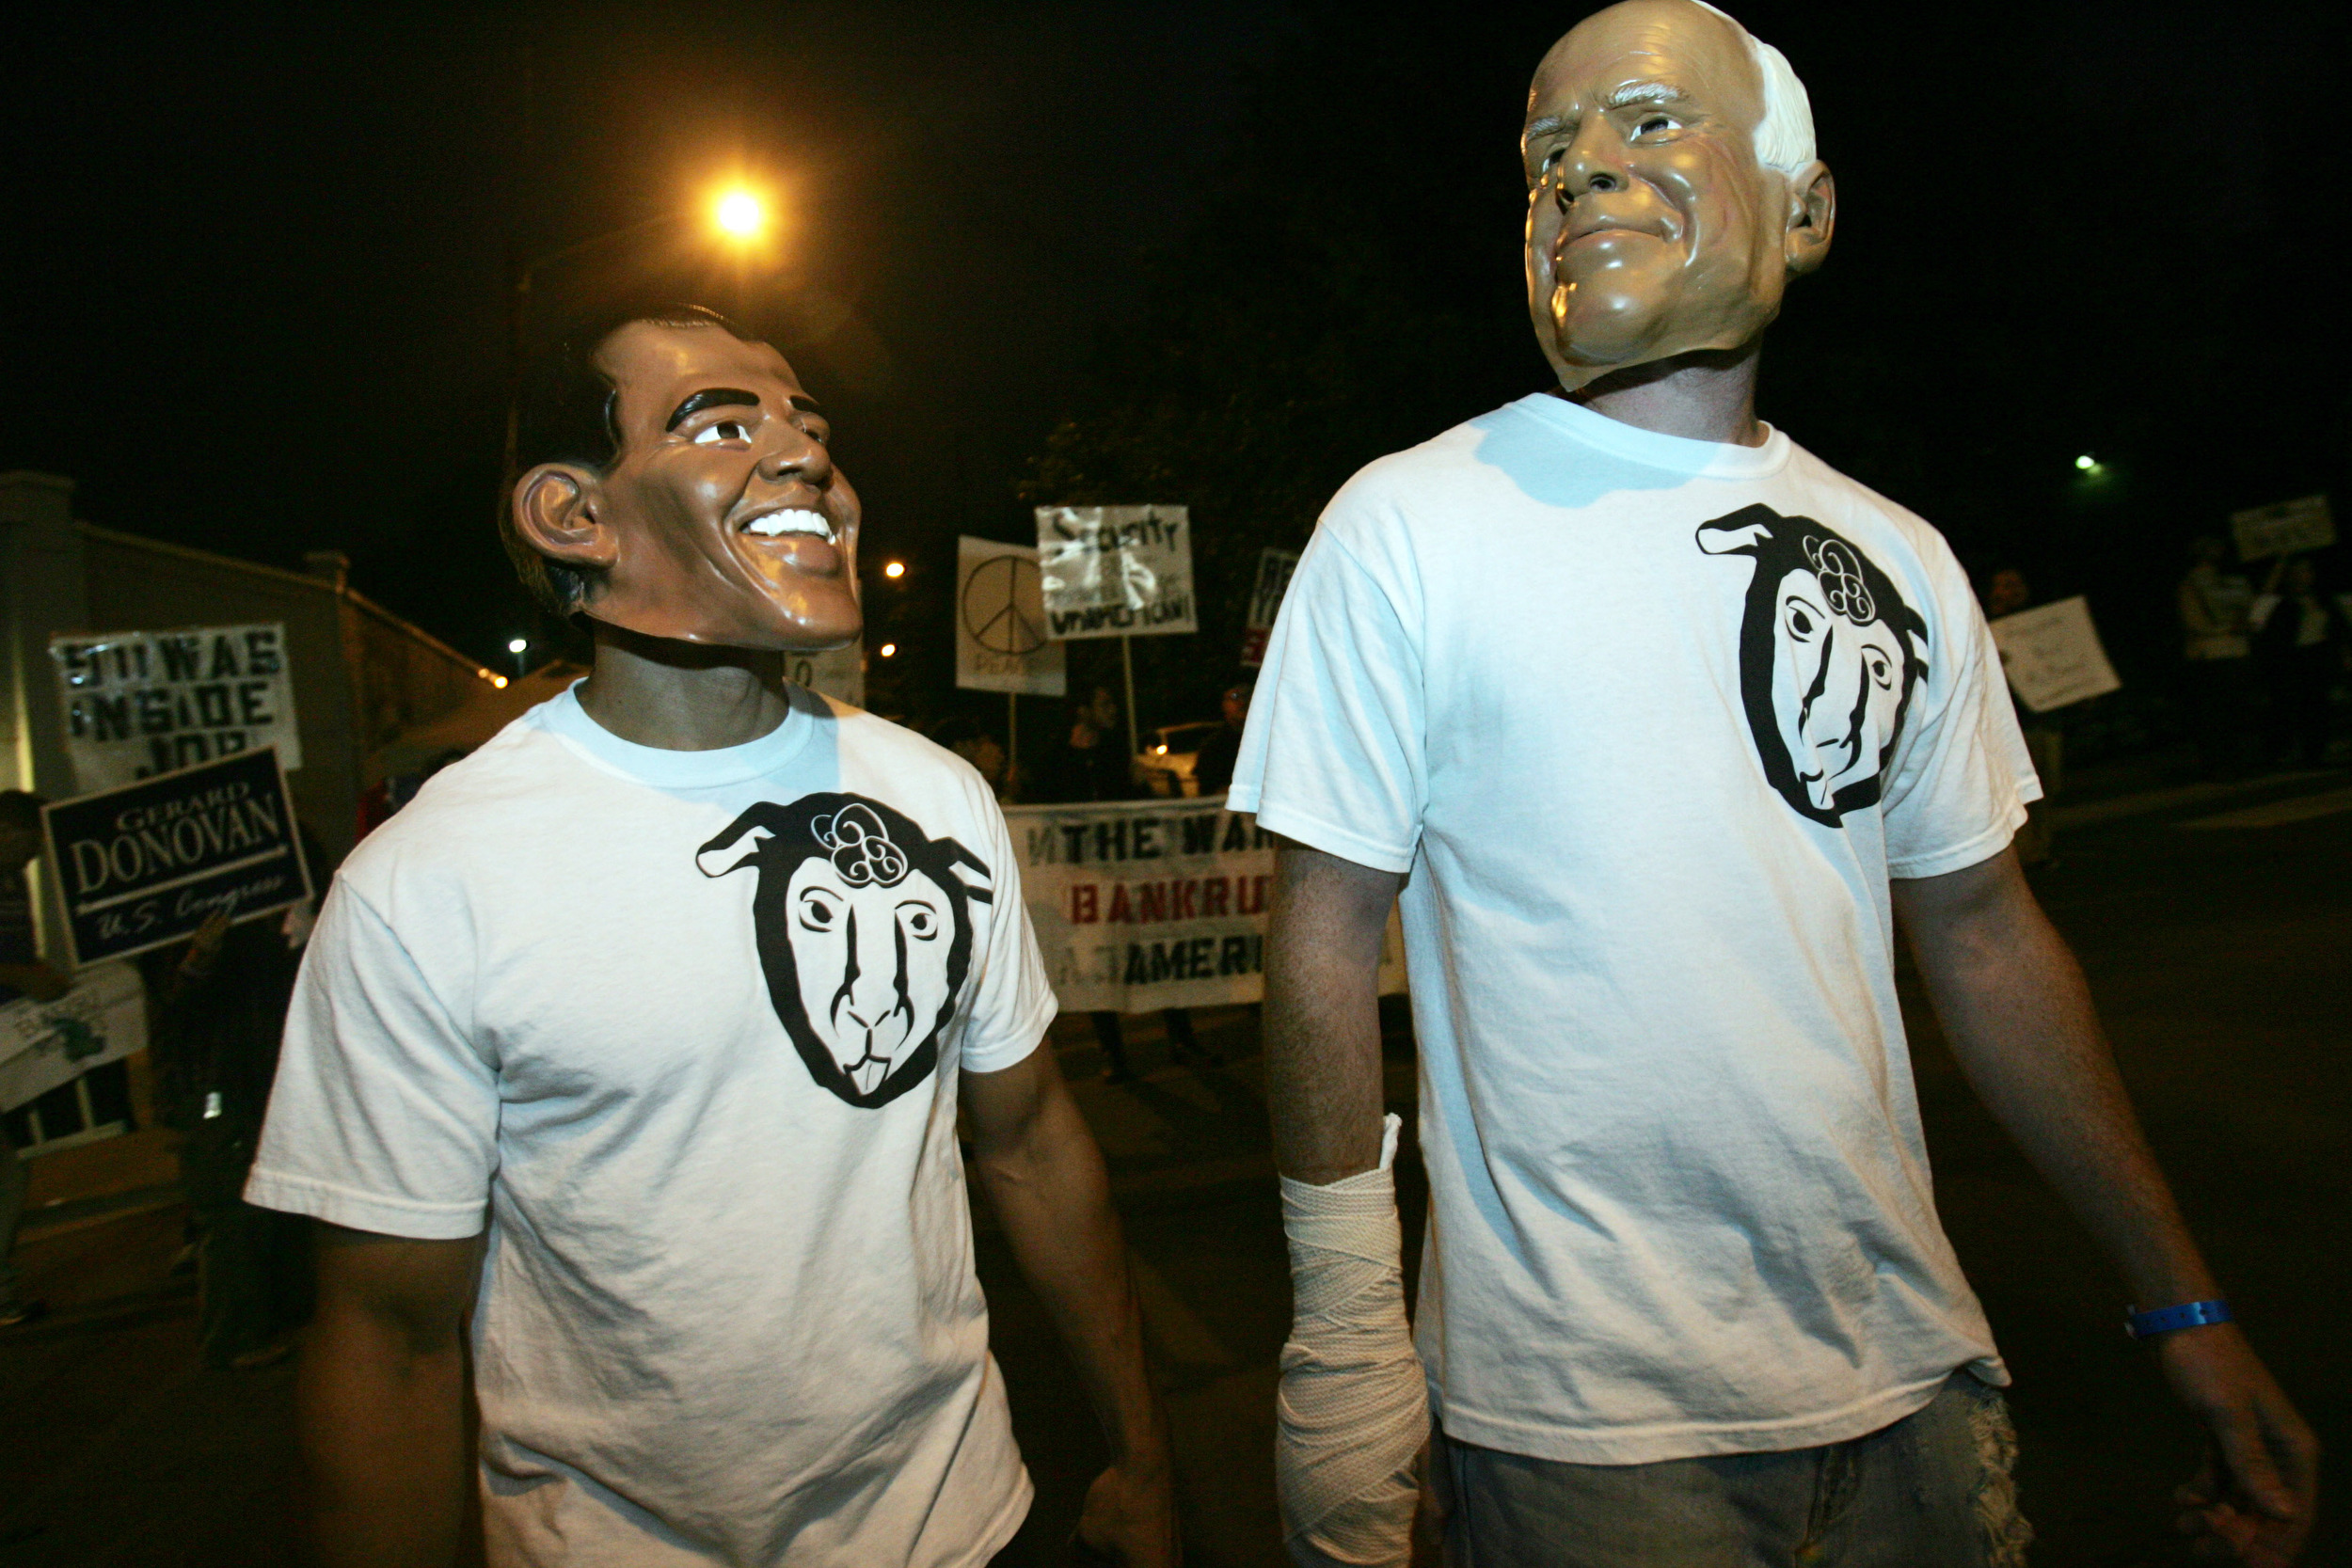 A group protesting the lack of third party candidates wears Obama and McCain masks outside the town hall debate.